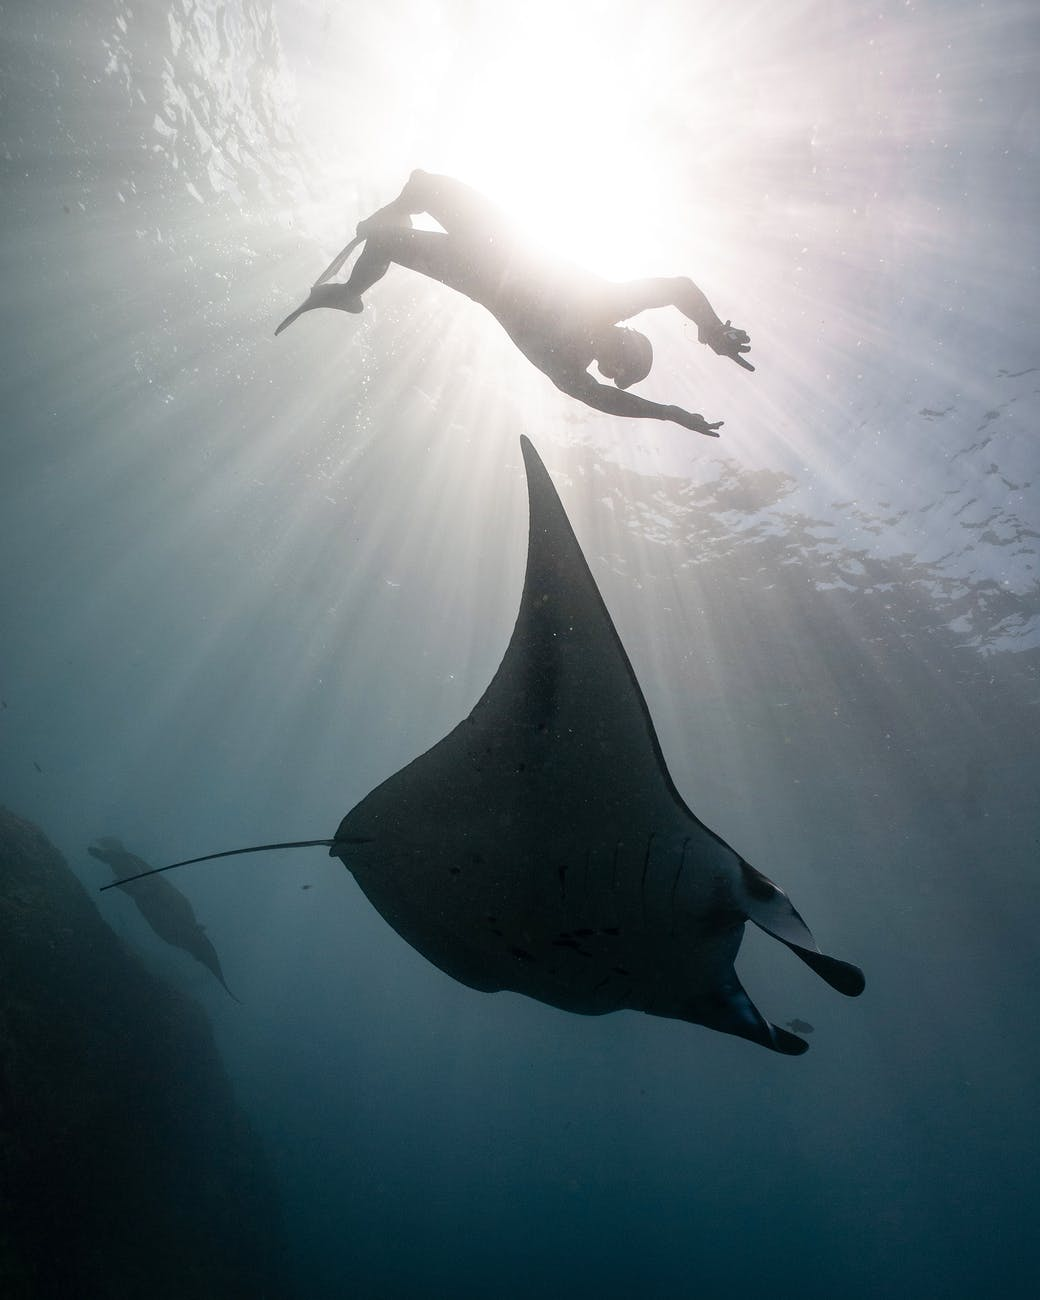 scuba diver and whale under water